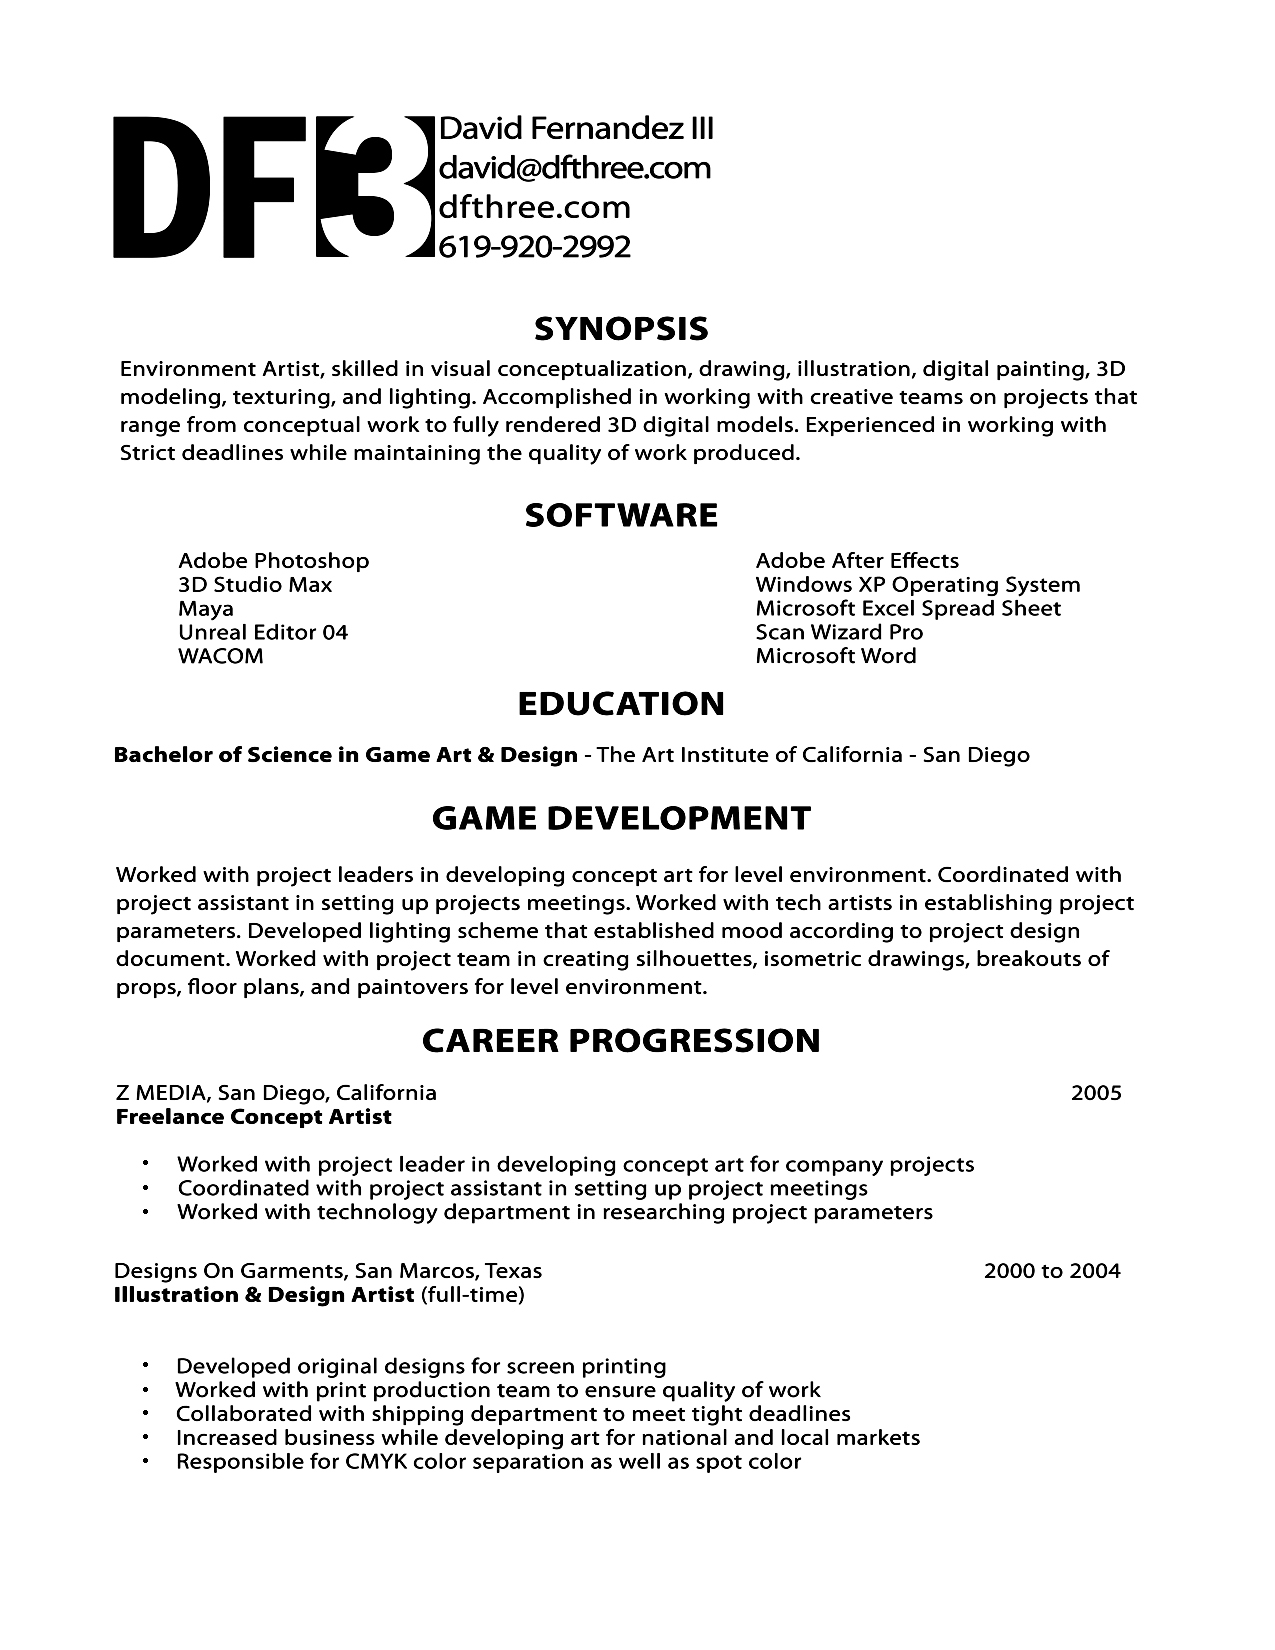 Picnictoimpeachus  Nice Game Developer Resume Game Tester Resume Sample Game Tester  With Handsome Better Jobs Faster With Cool Generic Cover Letter For Resume Also Resume For Construction In Addition Resume Template Download Free And Check My Resume As Well As Key Words For Resume Additionally Retail Sales Manager Resume From Kelseymarieco With Picnictoimpeachus  Handsome Game Developer Resume Game Tester Resume Sample Game Tester  With Cool Better Jobs Faster And Nice Generic Cover Letter For Resume Also Resume For Construction In Addition Resume Template Download Free From Kelseymarieco